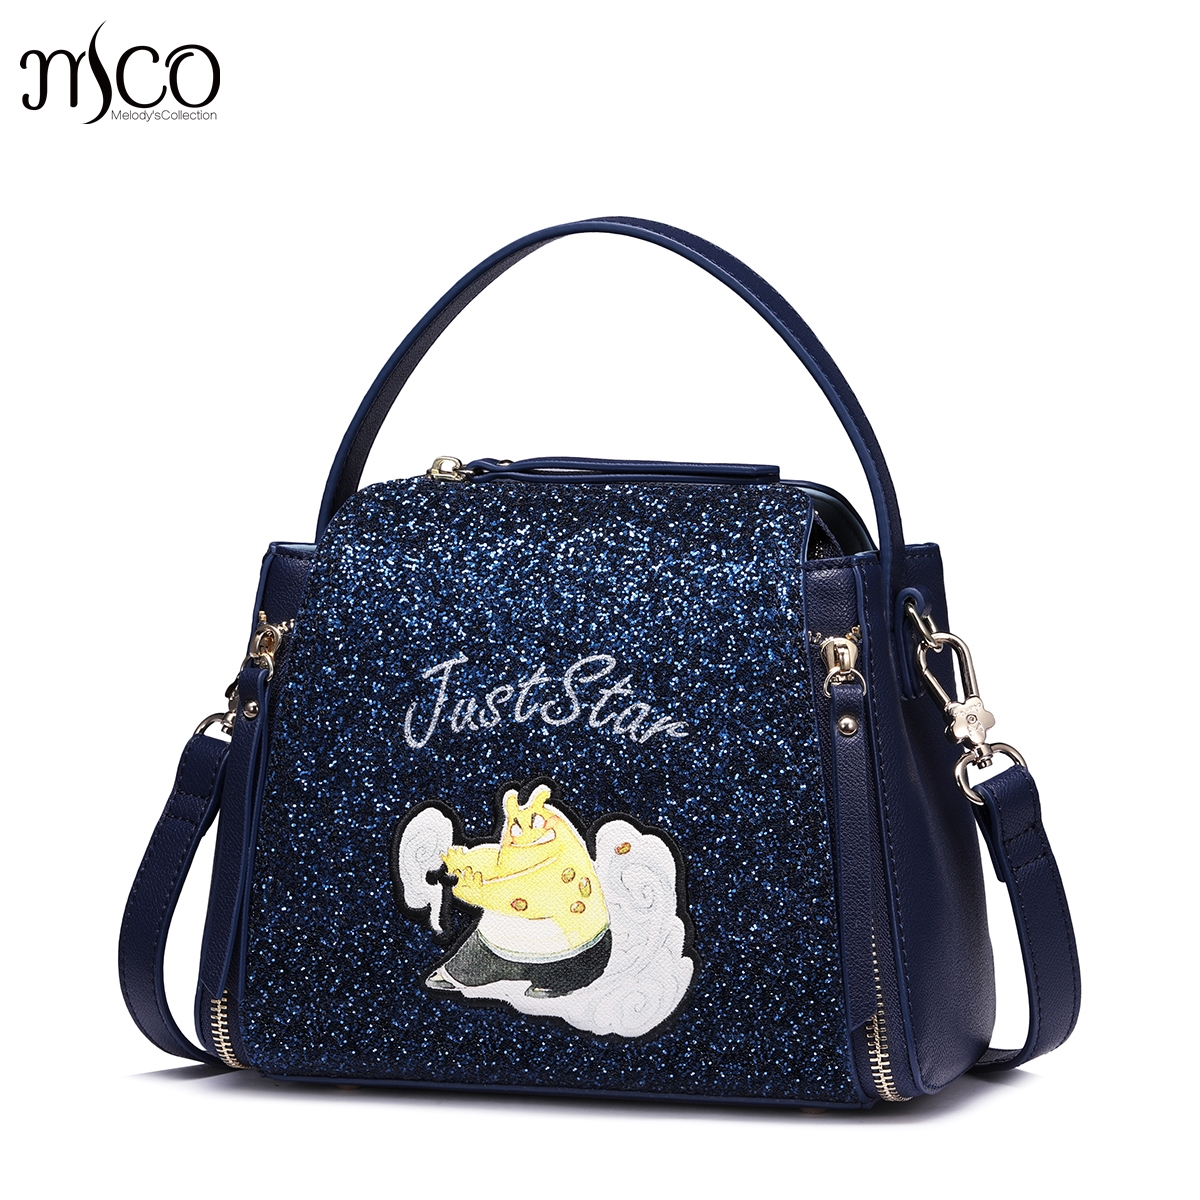 Brand chinse Kungfu cartoon PU Leather Purse Crossbody Shoulder Women Bag Clutch Female Handbags Sac a Main Femme De Marque brand pu leather fairy tales purse crossbody shoulder women bag clutch female handbags sac a main femme de marque girls